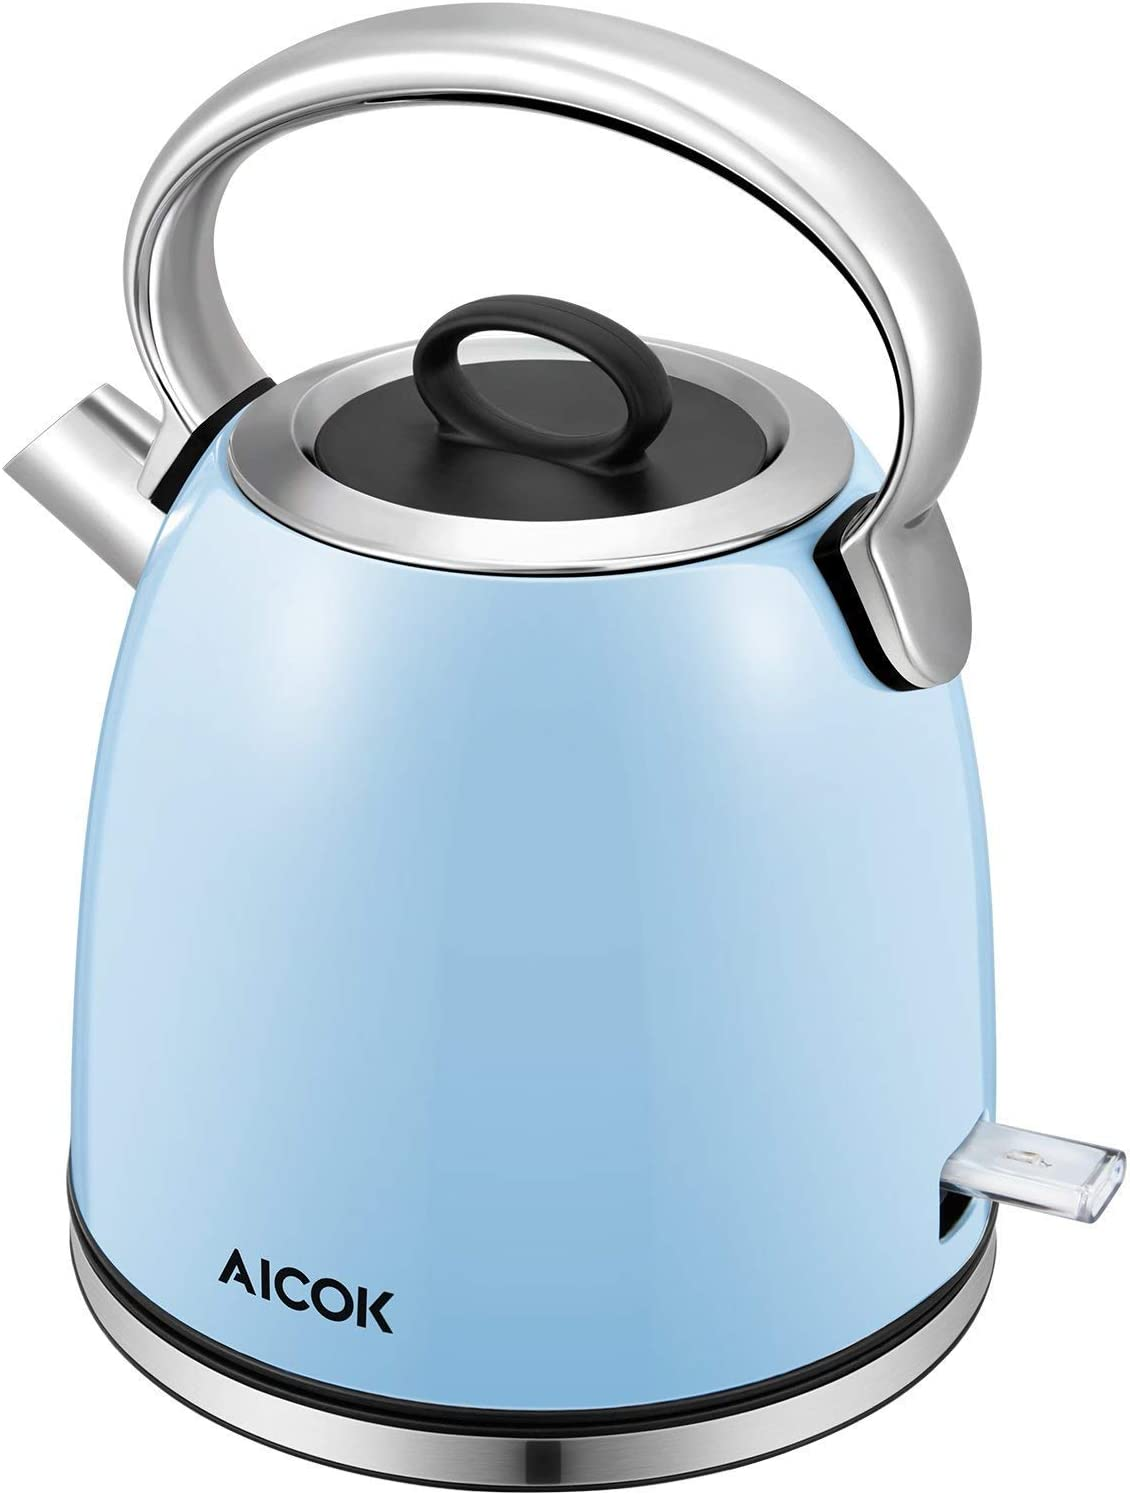 Electric Kettle Retro Electric Tea Kettle (BPA free), 1500W Rapid Water Boiler, Cordless Dome Kettle with Detachable Mesh Filter, British Strix for Auto off and Boil Dry Protection, 1.7L, Aicok Retro Series